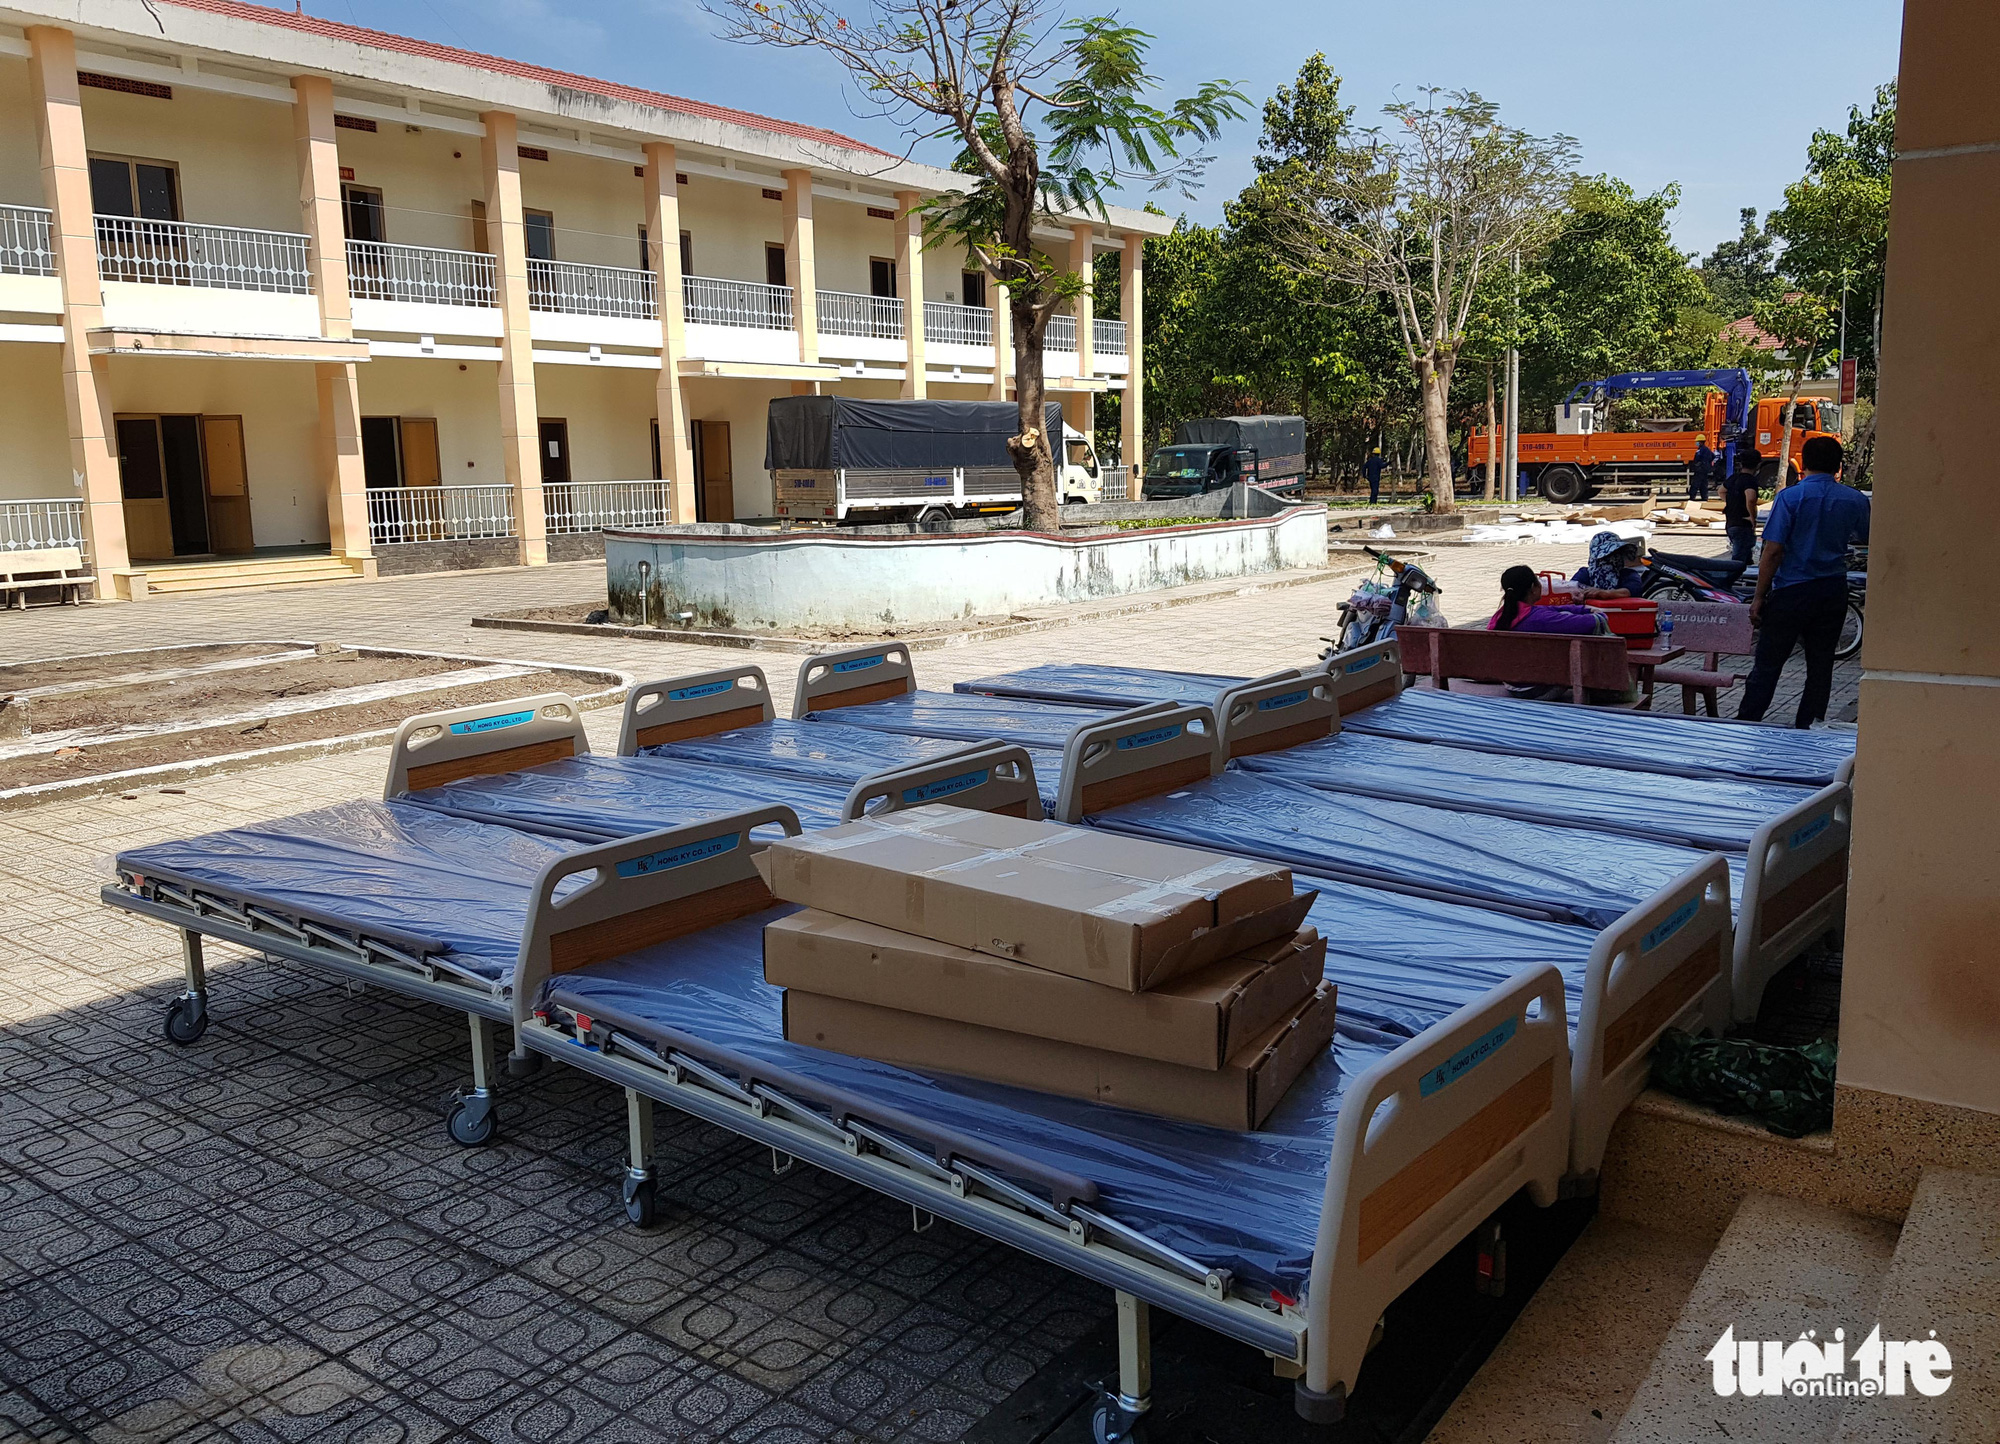 Beds are brought to the makeshift hospital in Cu Chi District on February 8, 2020. Photo: Ngoc Hien / Tuoi Tre